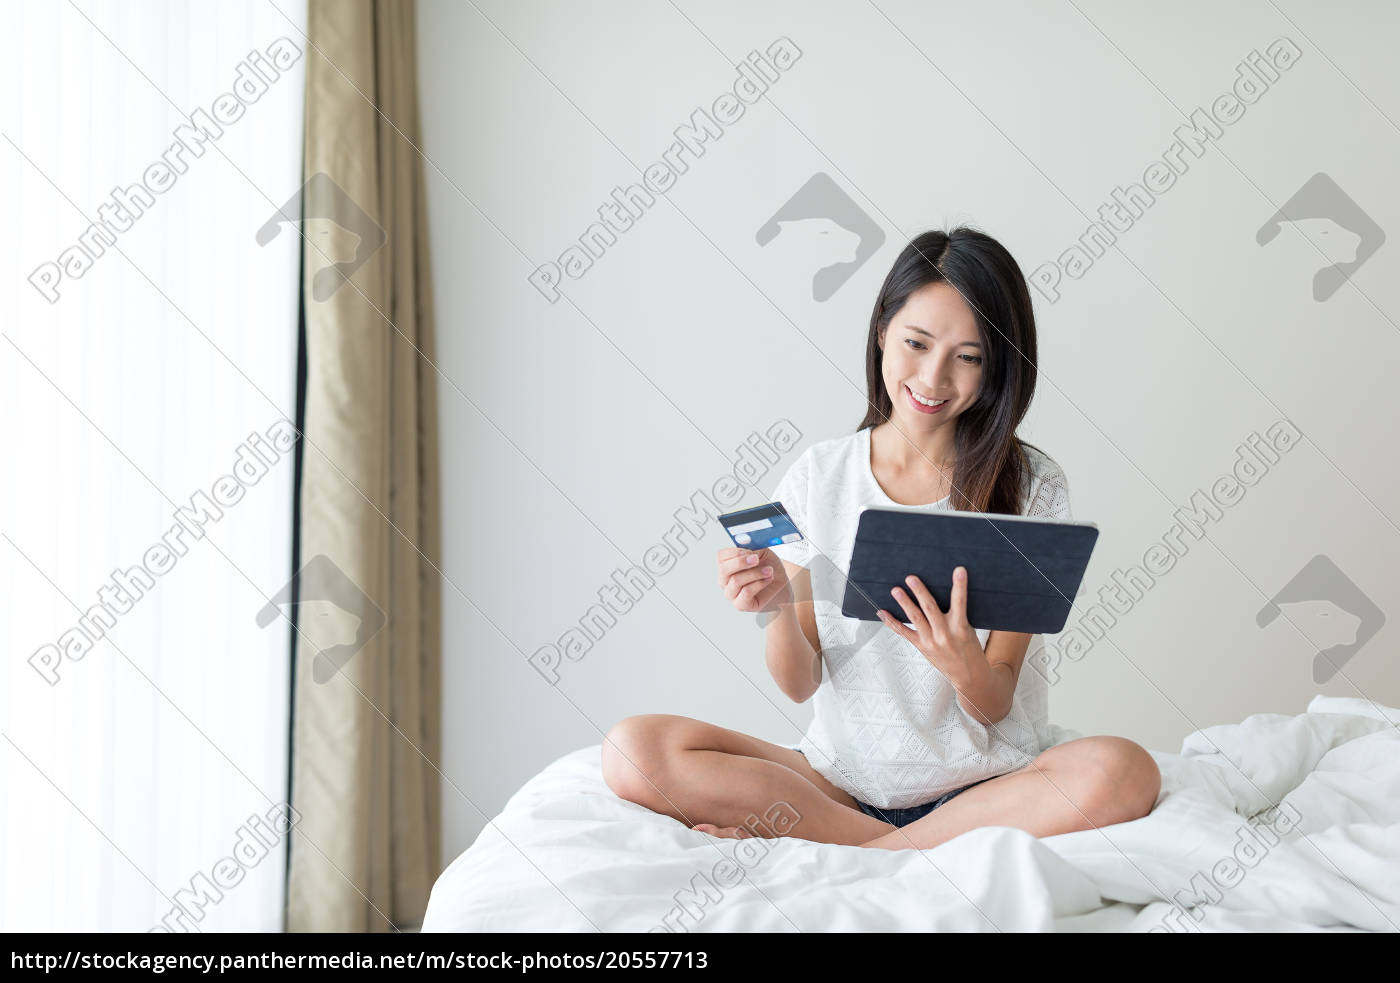 woman, using, digital, tablet, computer, for - 20557713